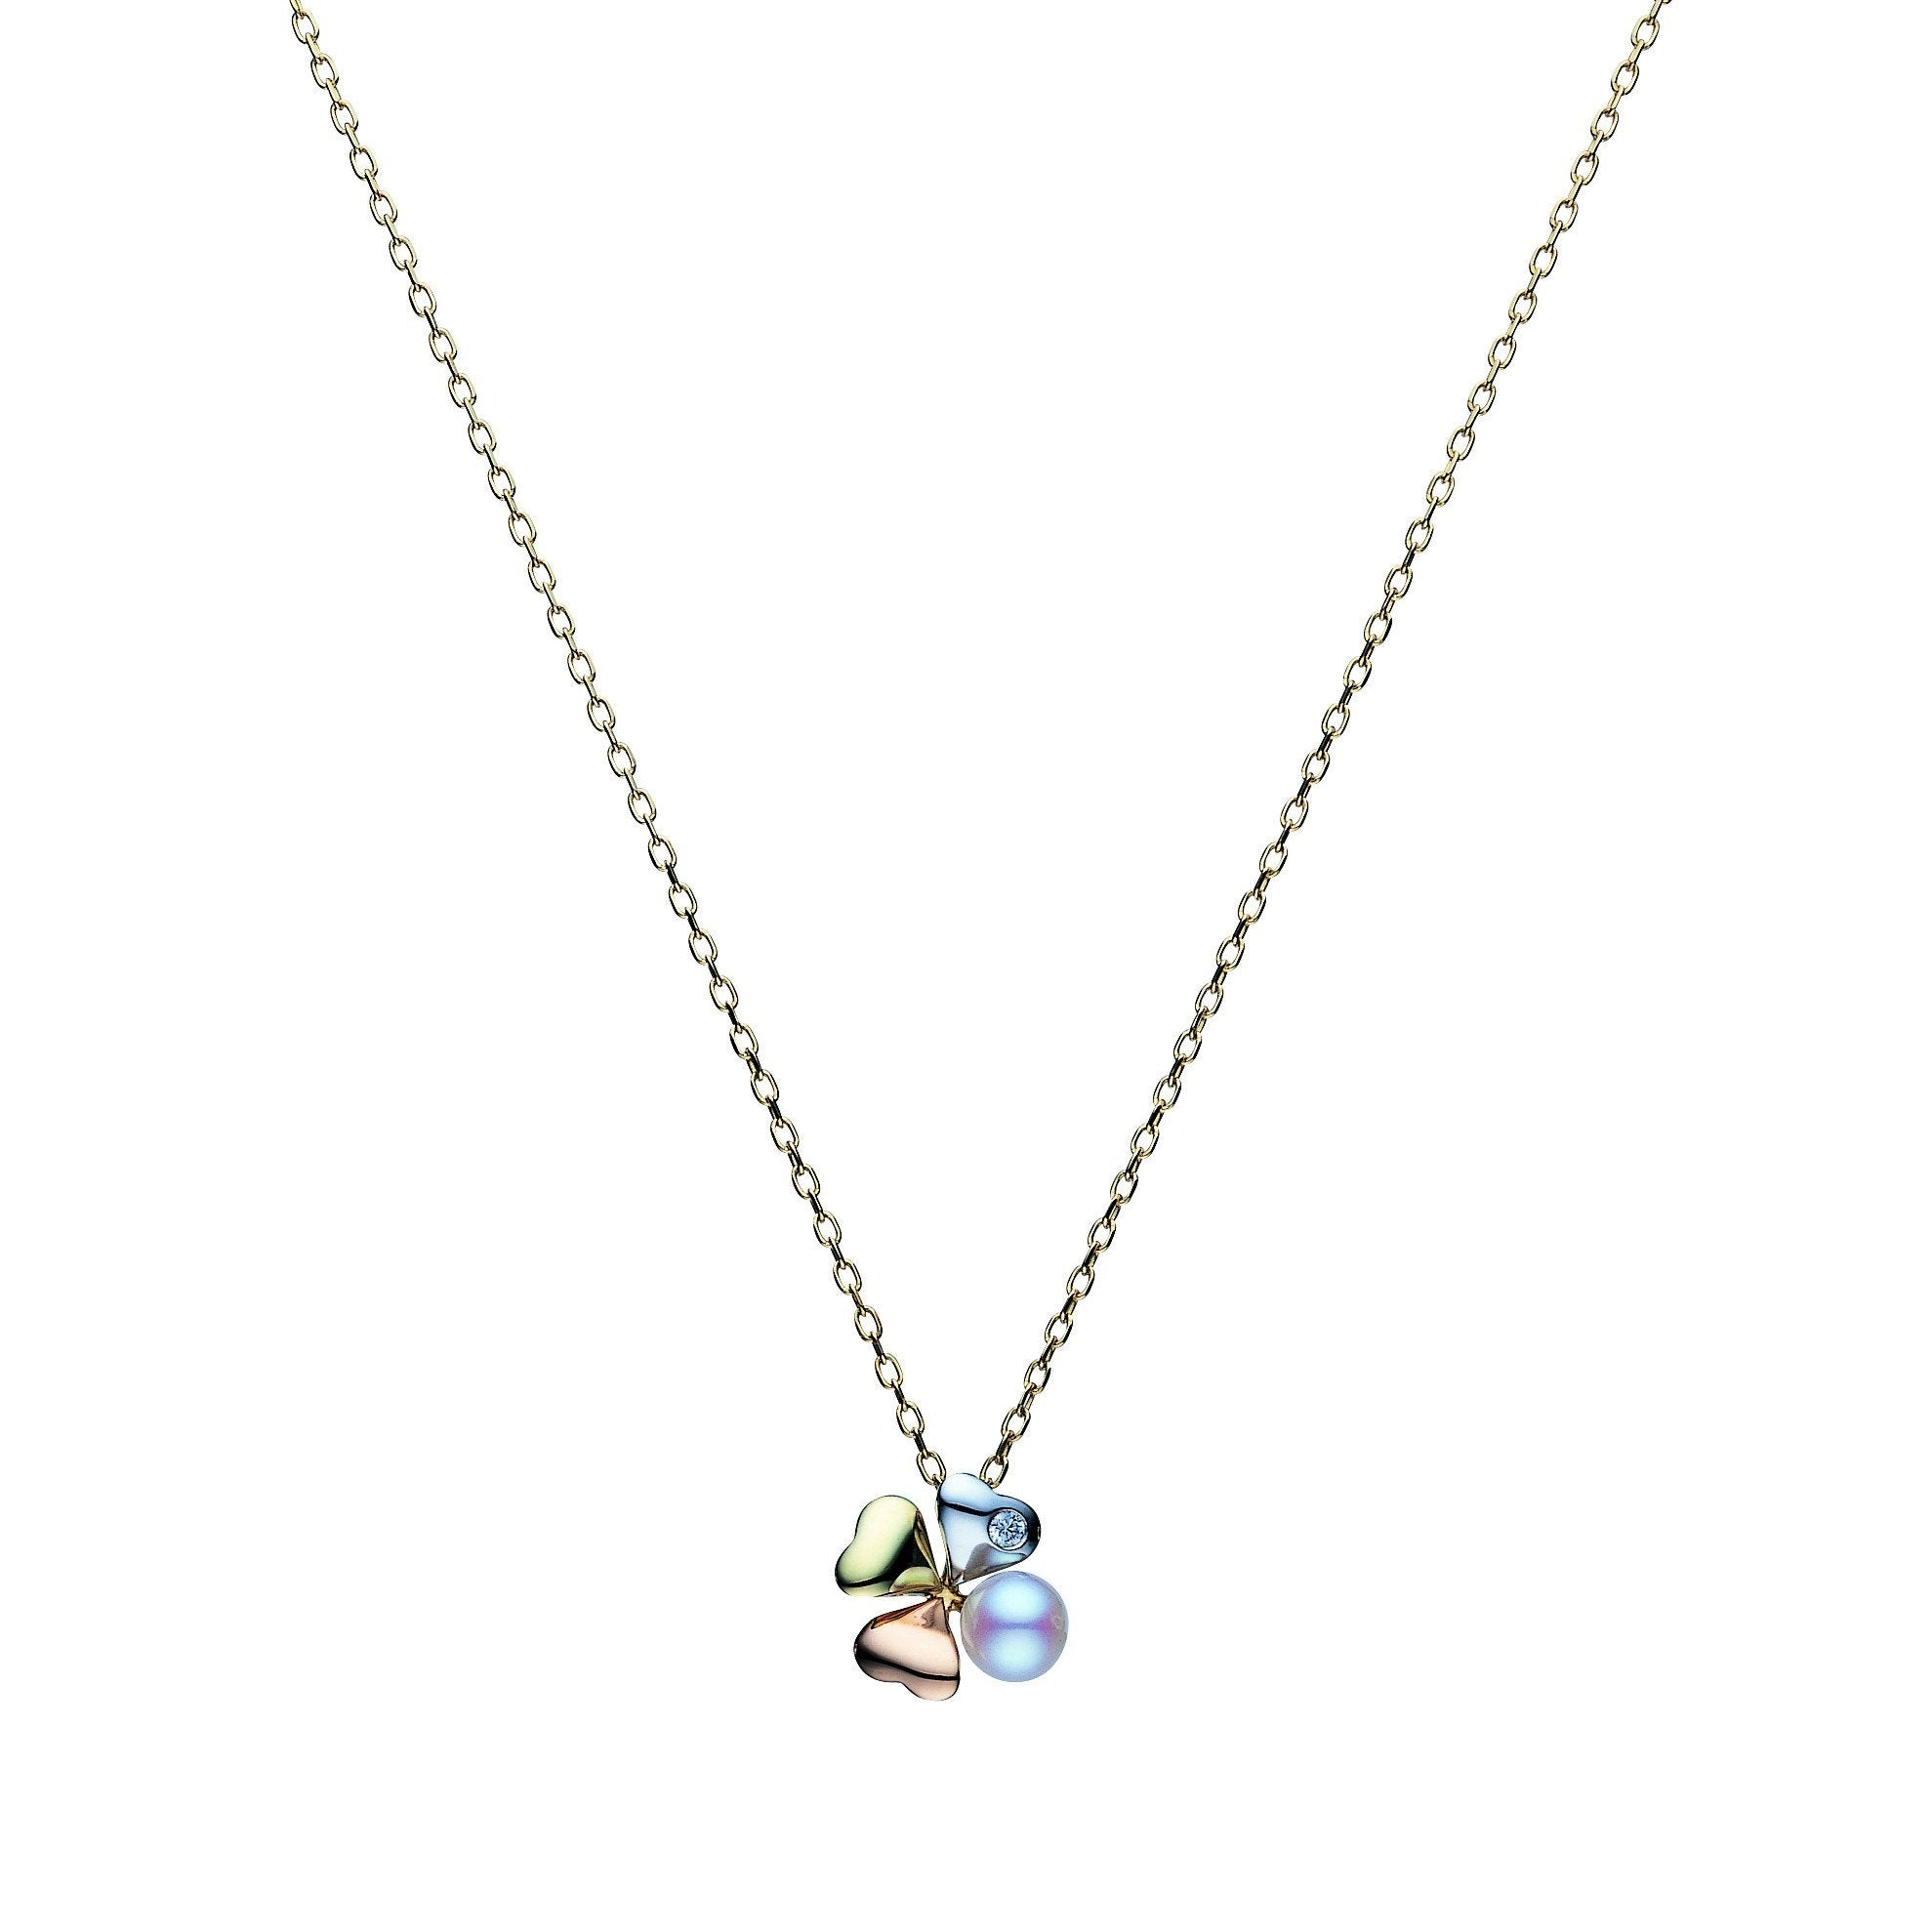 mikimoto pearl jewelry pendant necklace product pav fine broome